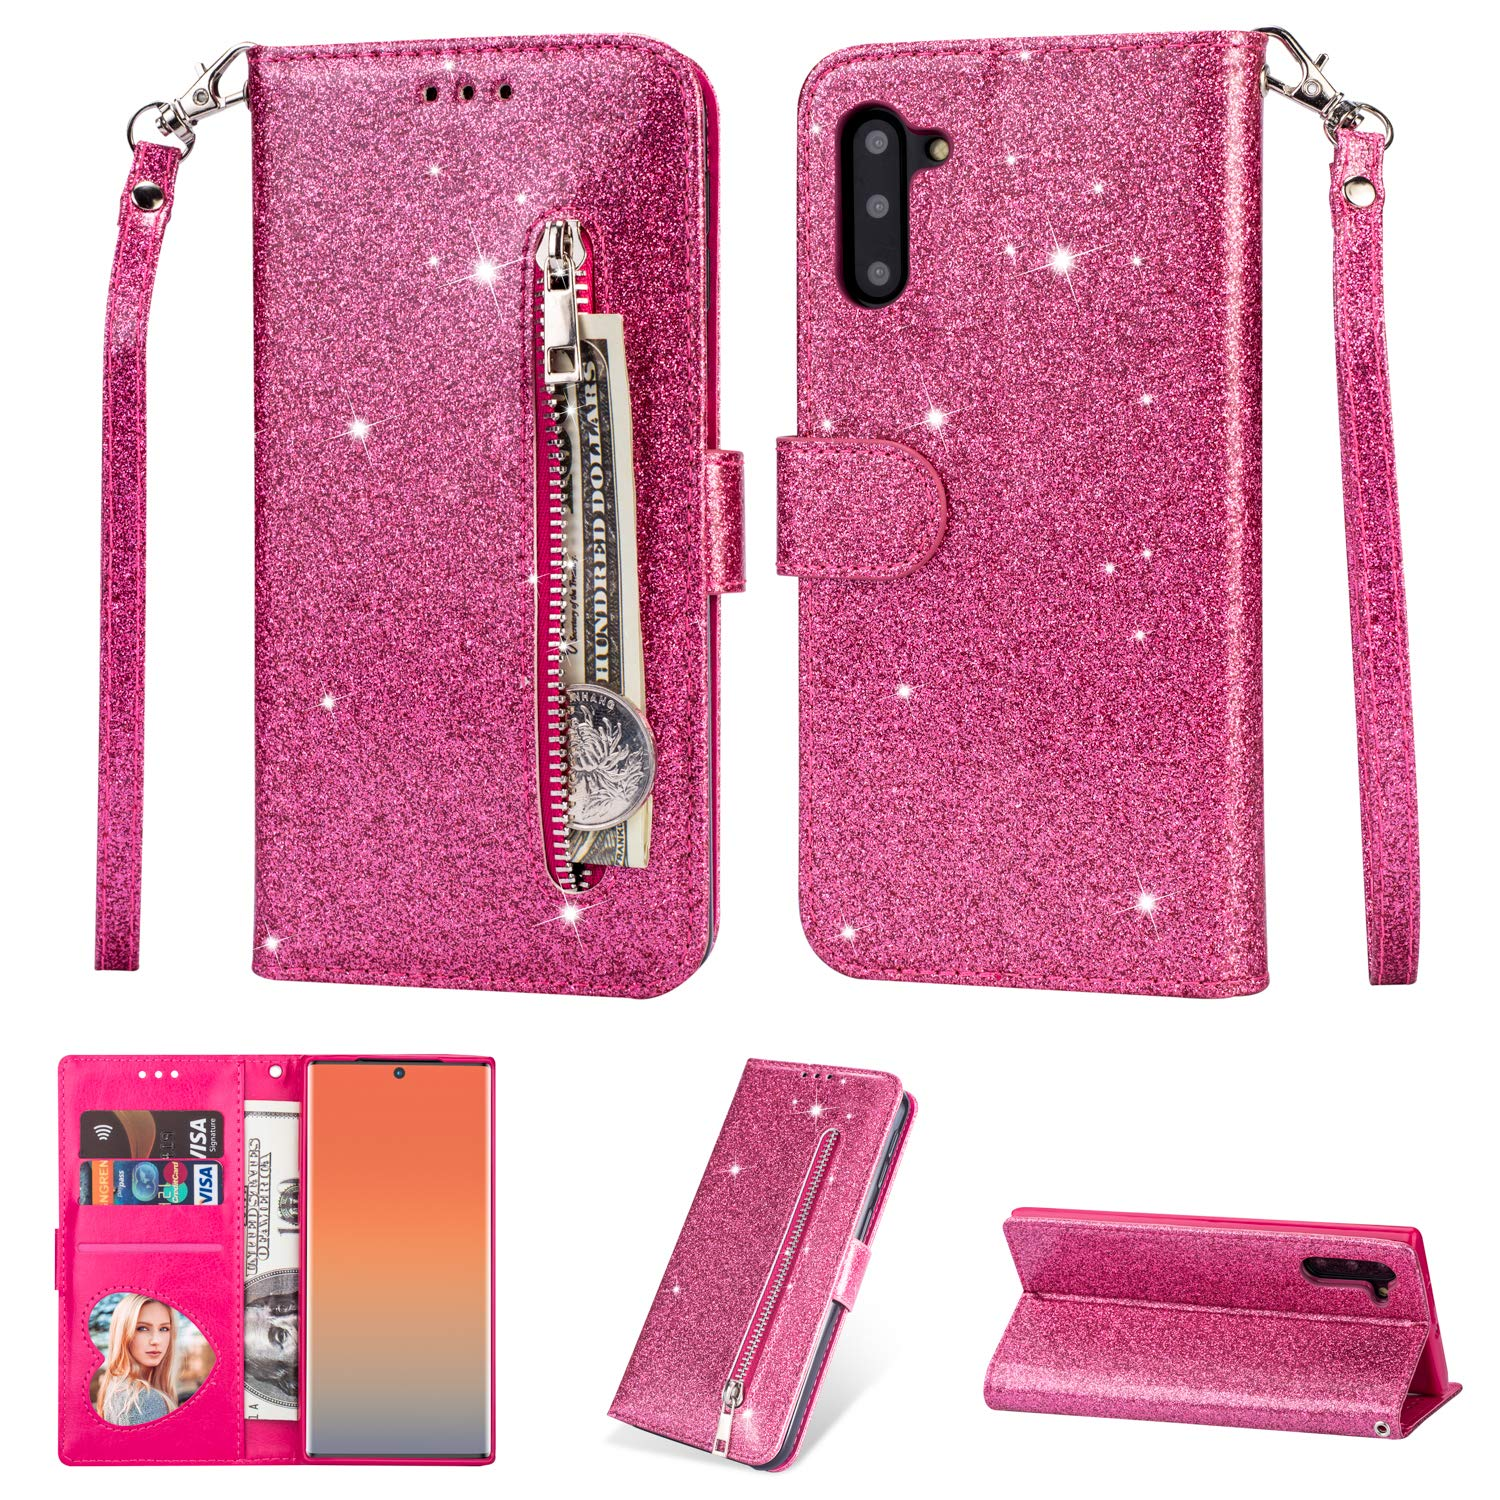 Tznzxm Galaxy Note 10 5G Case, Luxury Bling Glitter Sparkle PU Leather Magnetic Protective Flip Kickstand with Zipper Coin Credit Card Holder Cover Wrist Wallet for Samsung Note 10 5G Rose by Tznzxm